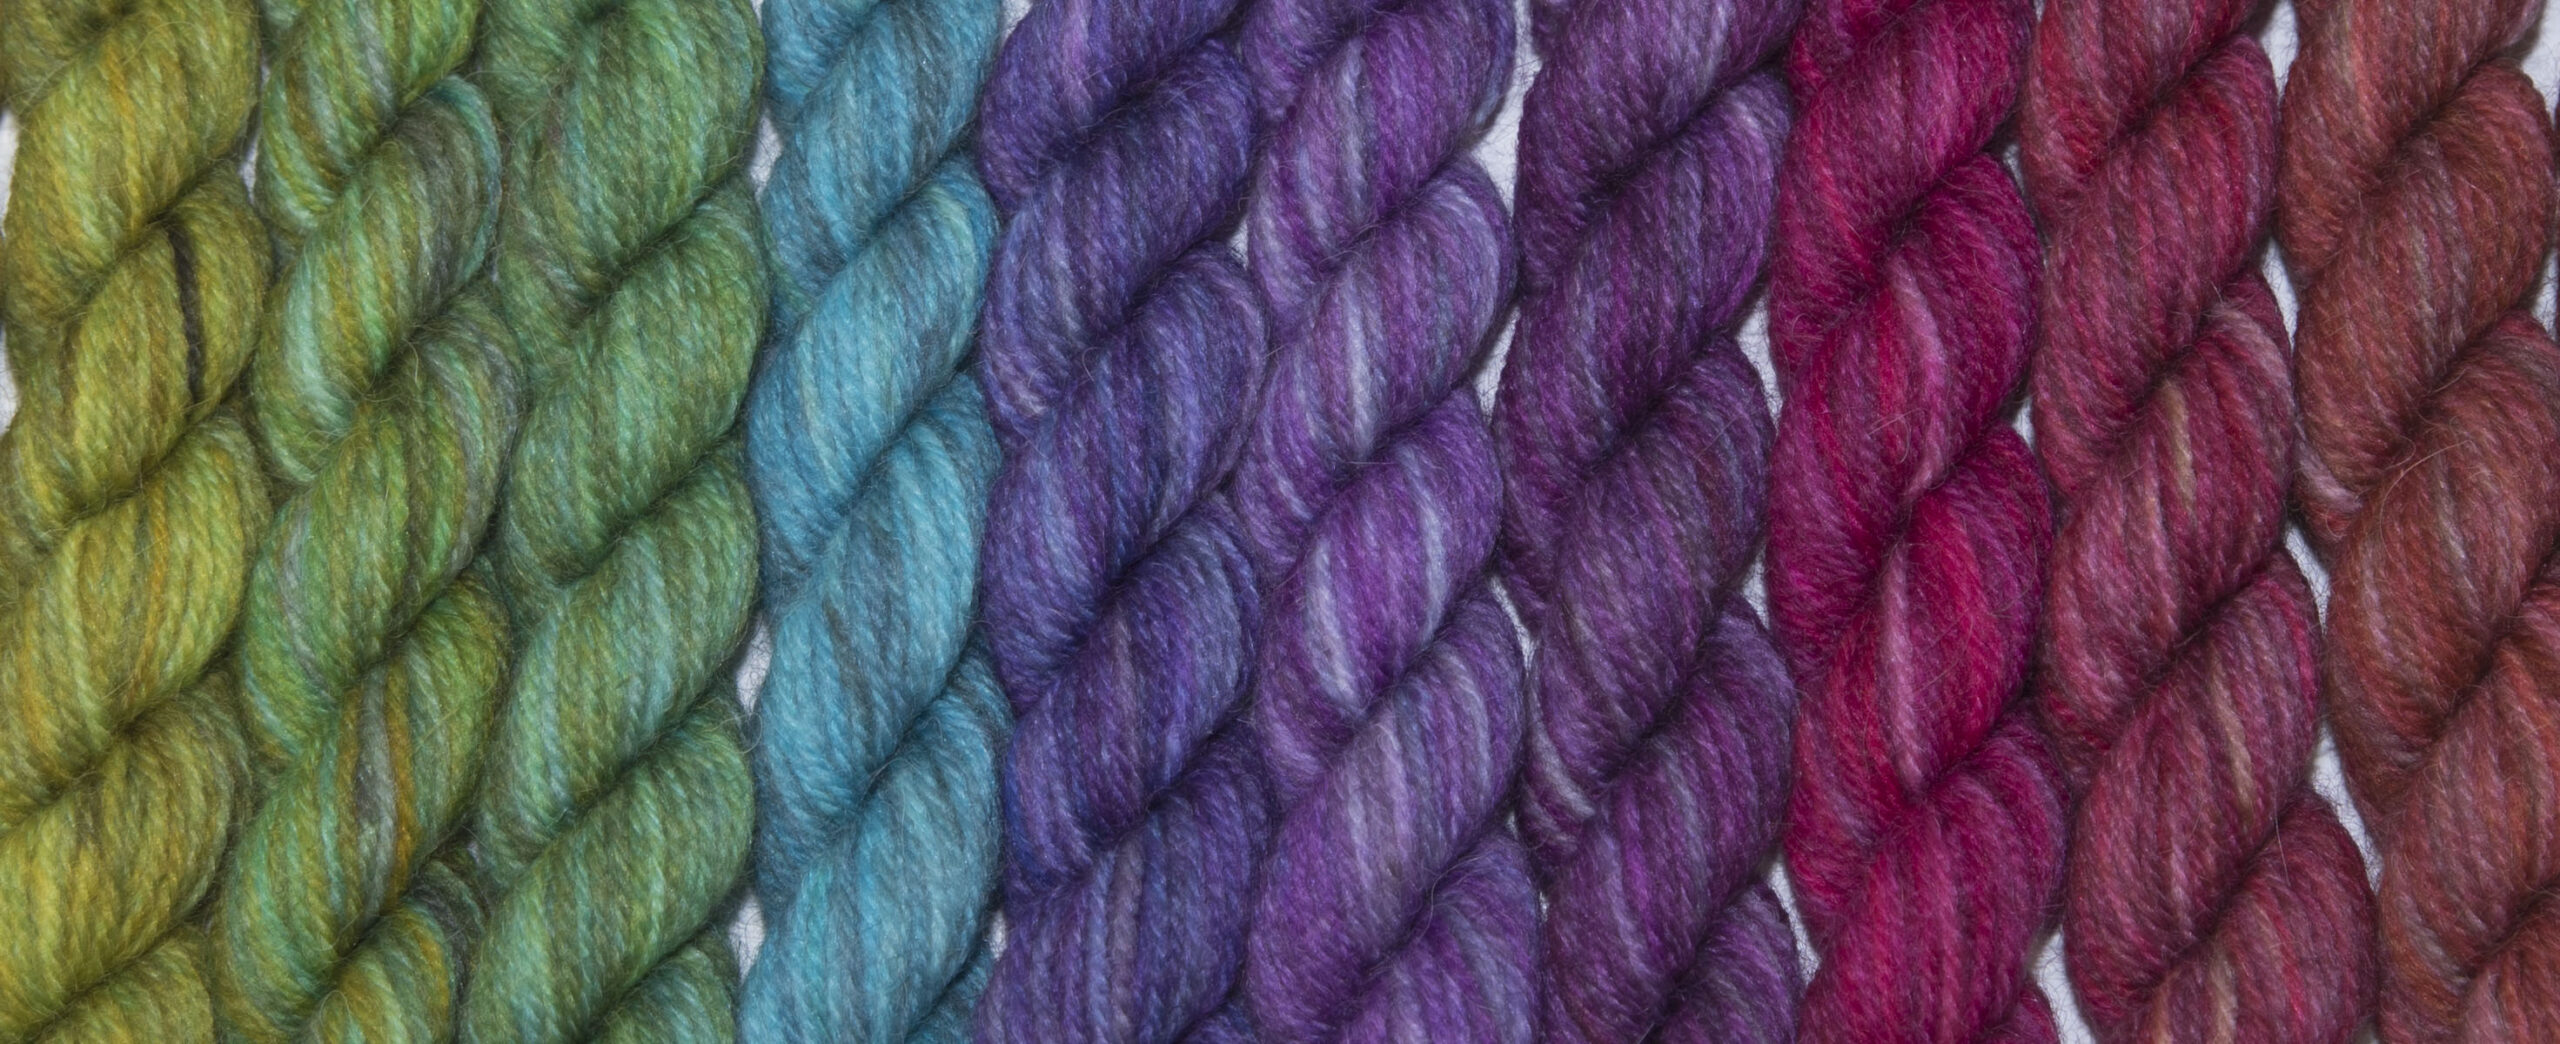 britsock mini skeins laid out in a line